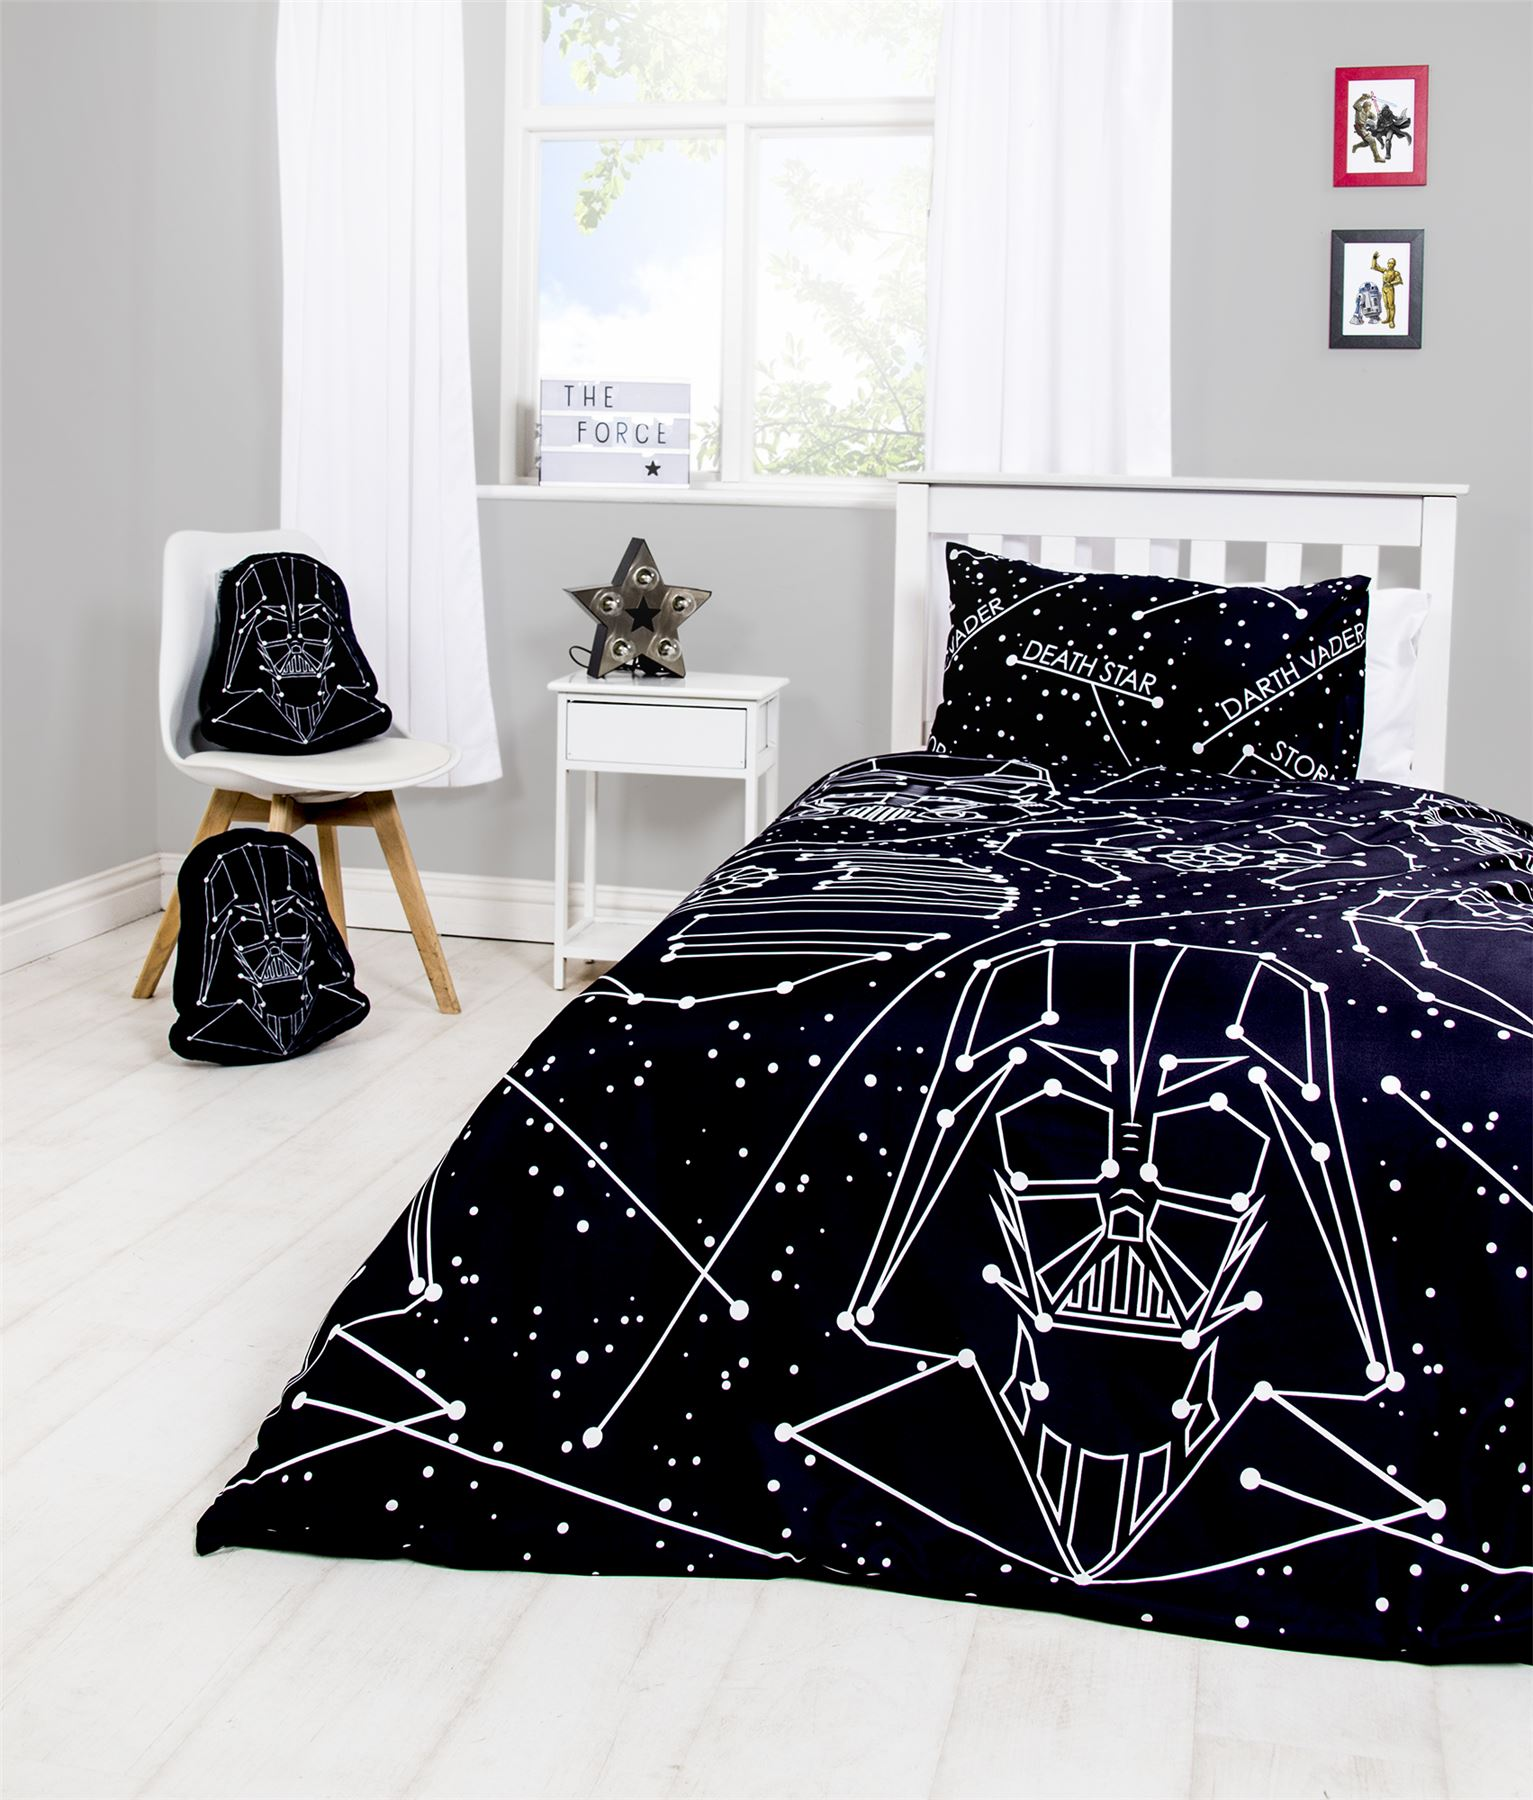 Official-Star-Wars-Licensed-Duvet-Covers-Single-Double-Jedi-Darth-Vader-Lego thumbnail 41